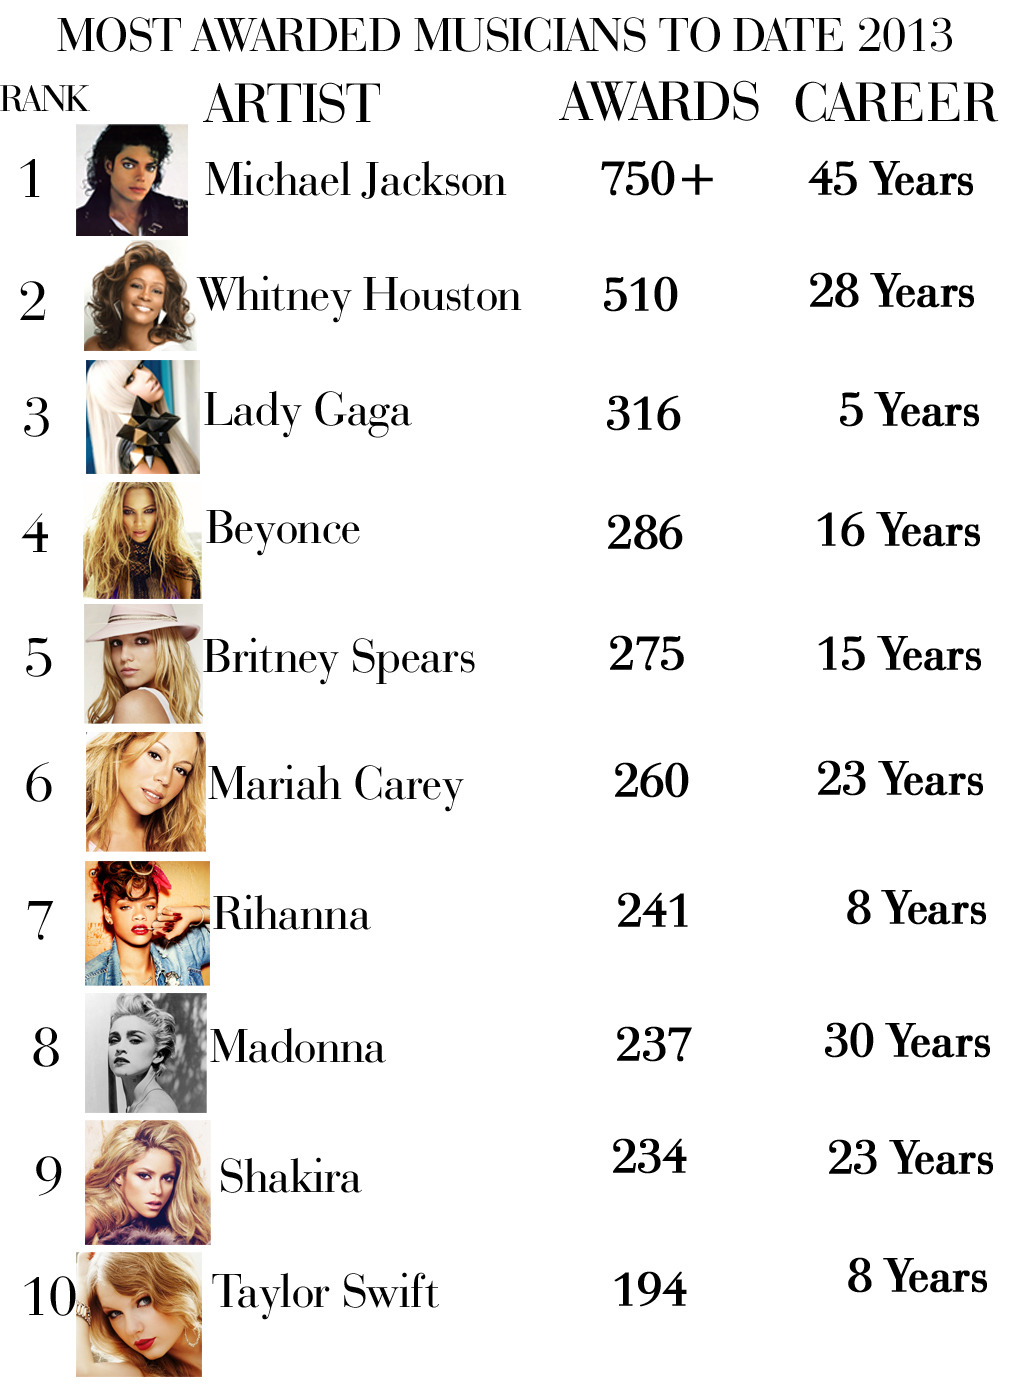 critsina:   Most Awarded Artists of All Time (2013)  MAaAmA